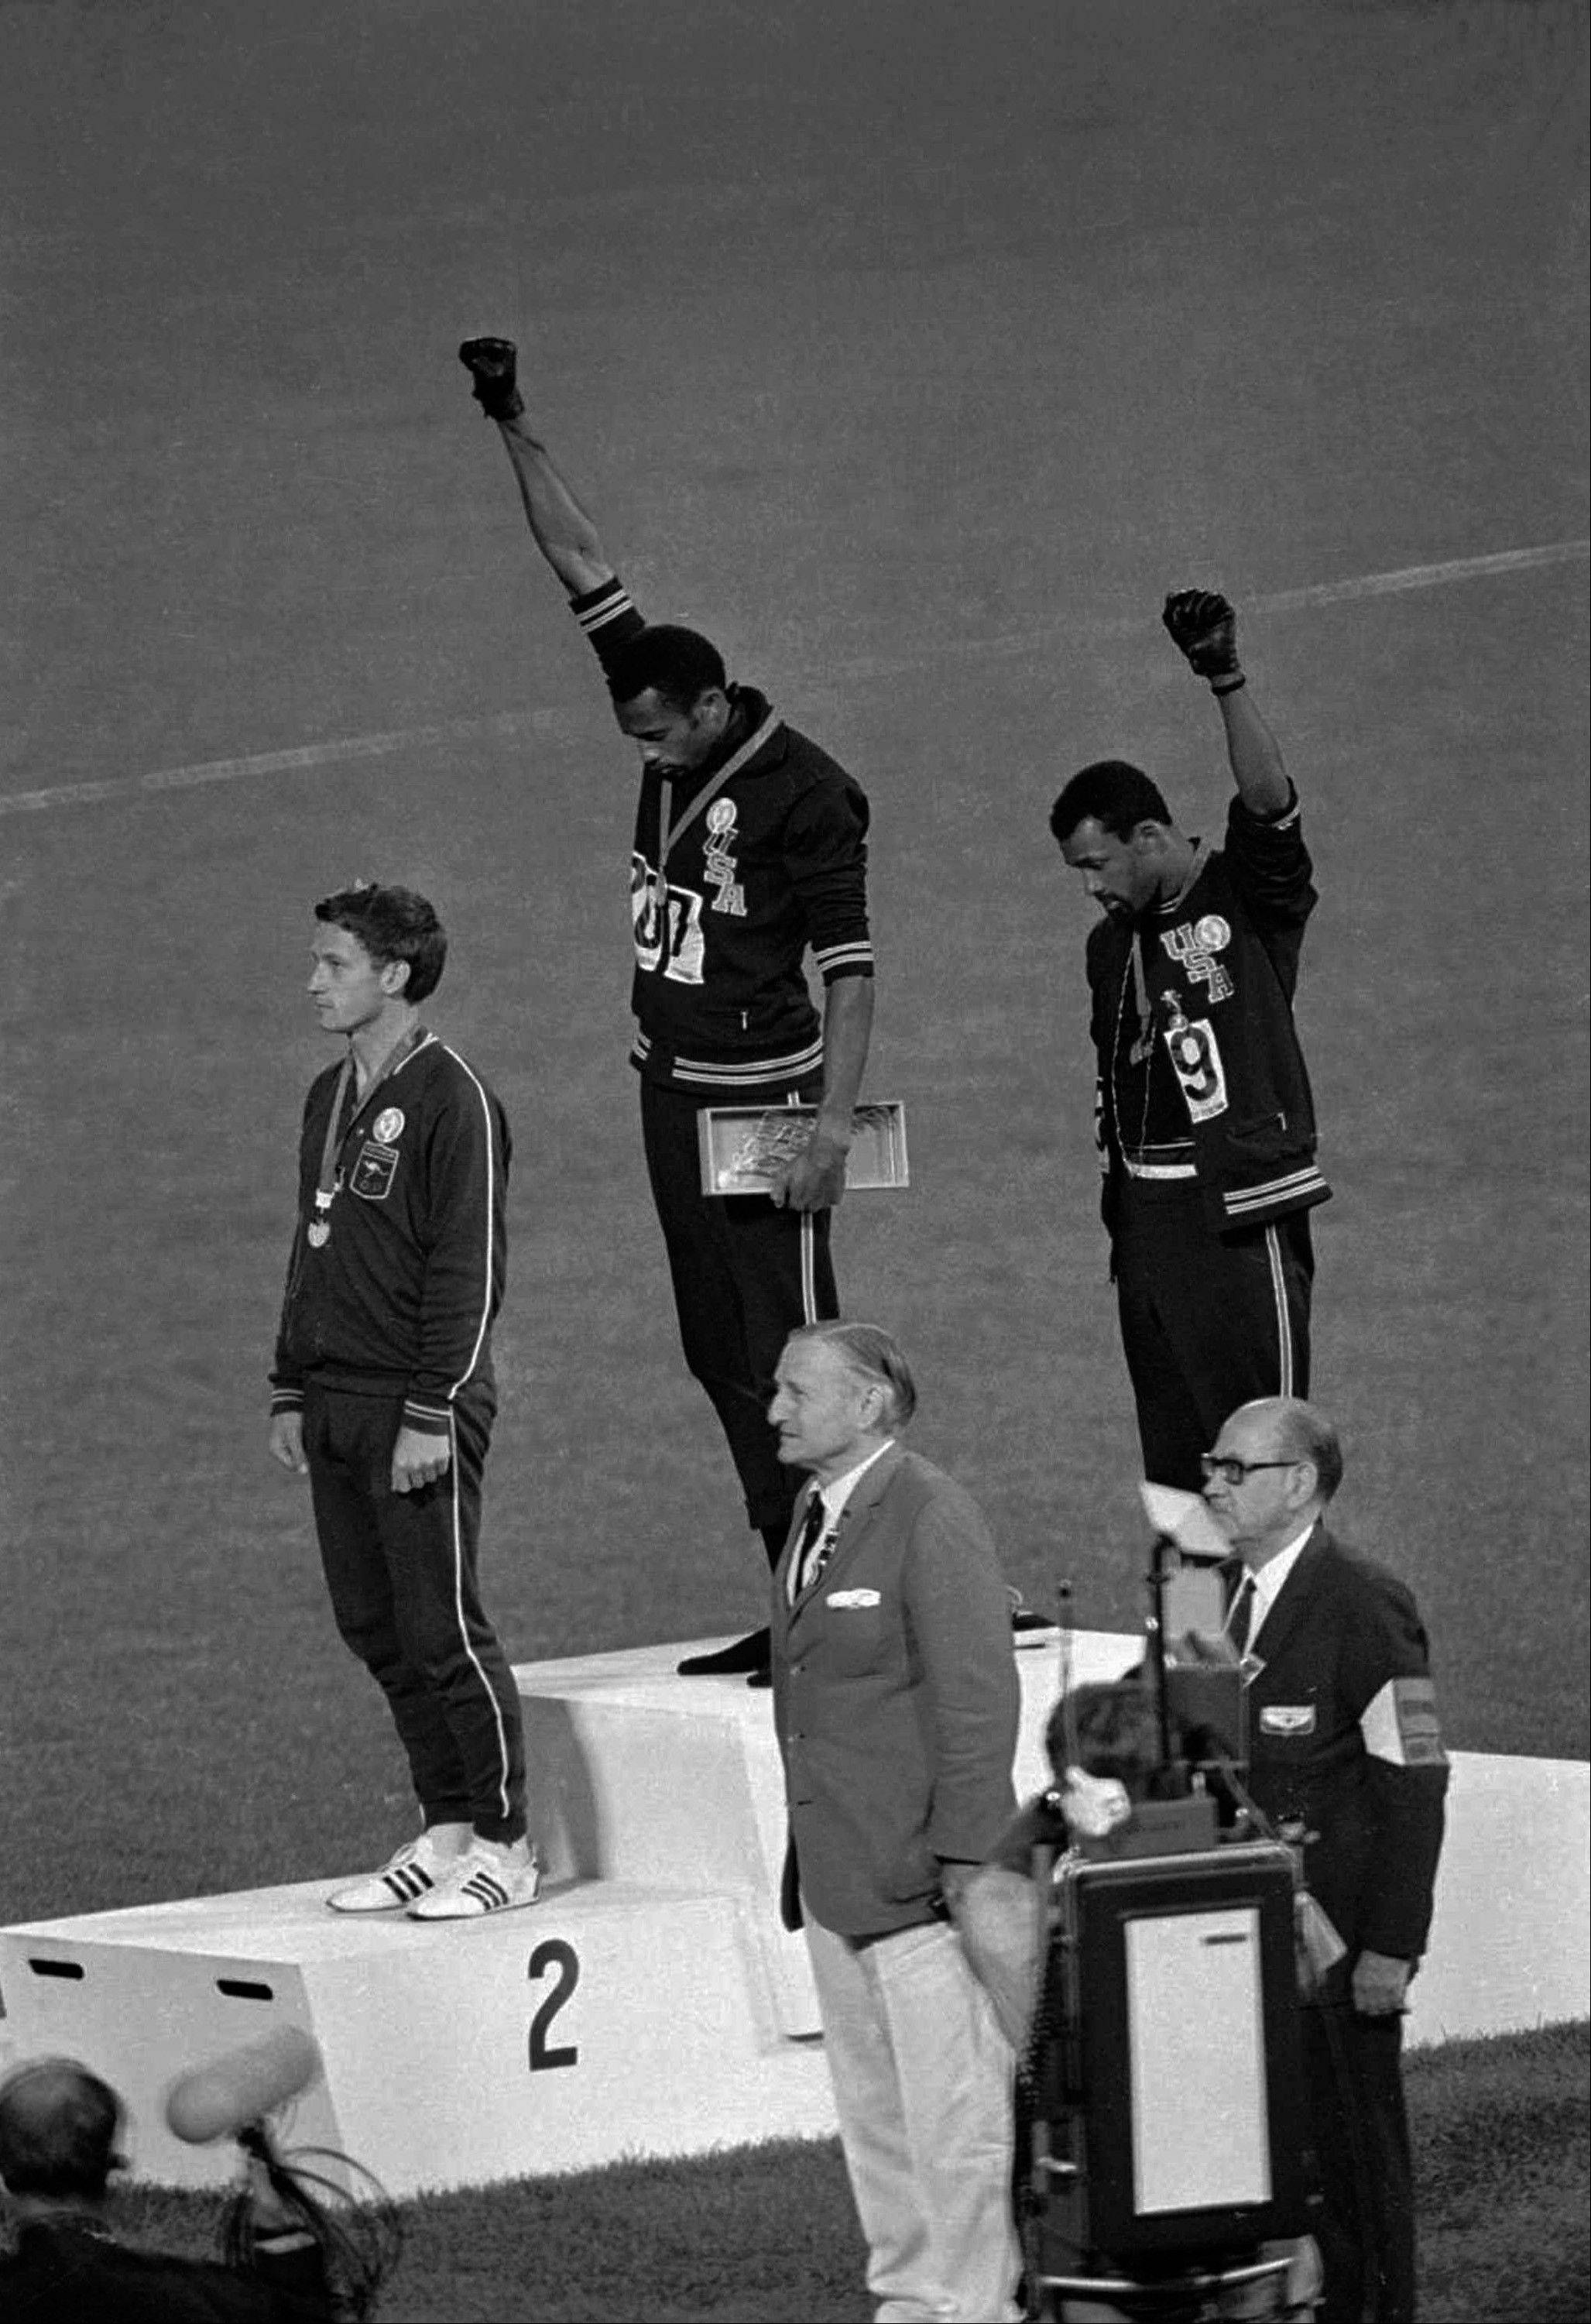 U.S. sprinters Tommie Smith, top center, and John Carlos, top right, extend their gloved fists during the playing of �The Star-Spangled Banner� on the medal podium during the 1968 Summer Olympic Games in Mexico City.